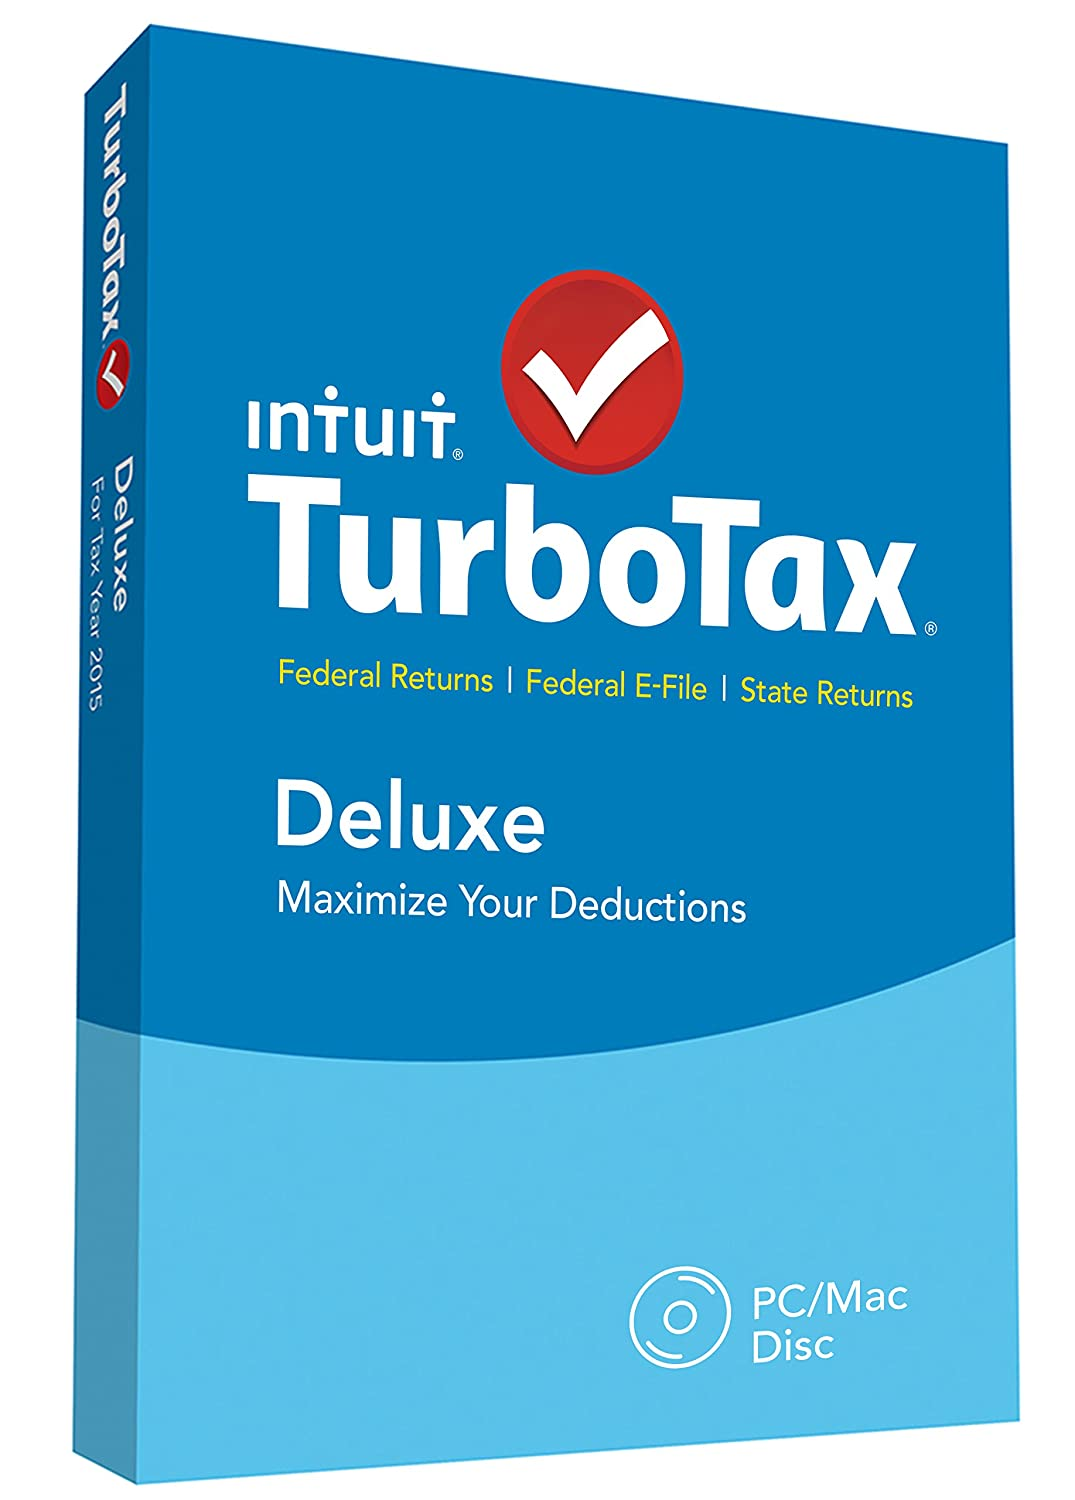 worksheet Itsdeductible Worksheet amazon com turbotax deluxe 2015 federal state taxes fed efile tax preparation software pcmacdisc old version software